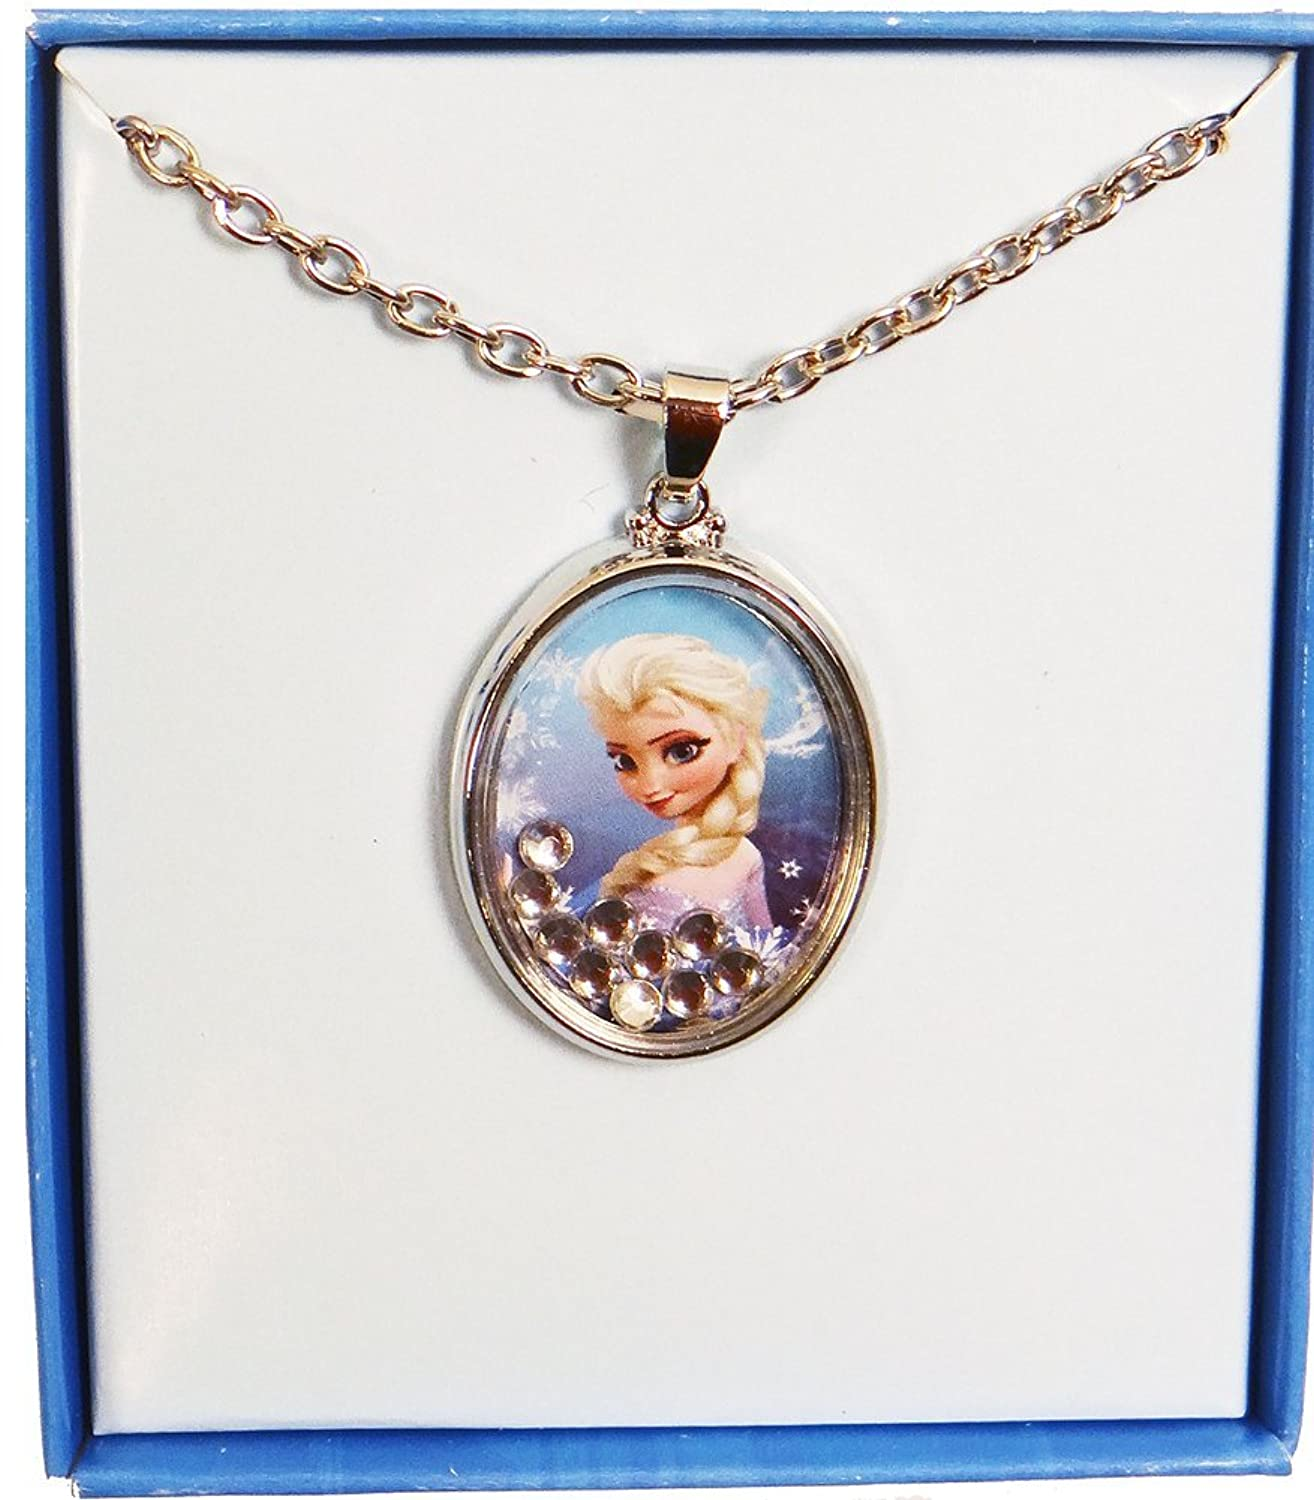 Disney Frozen Queen Elsa Shaker Pendant Necklace